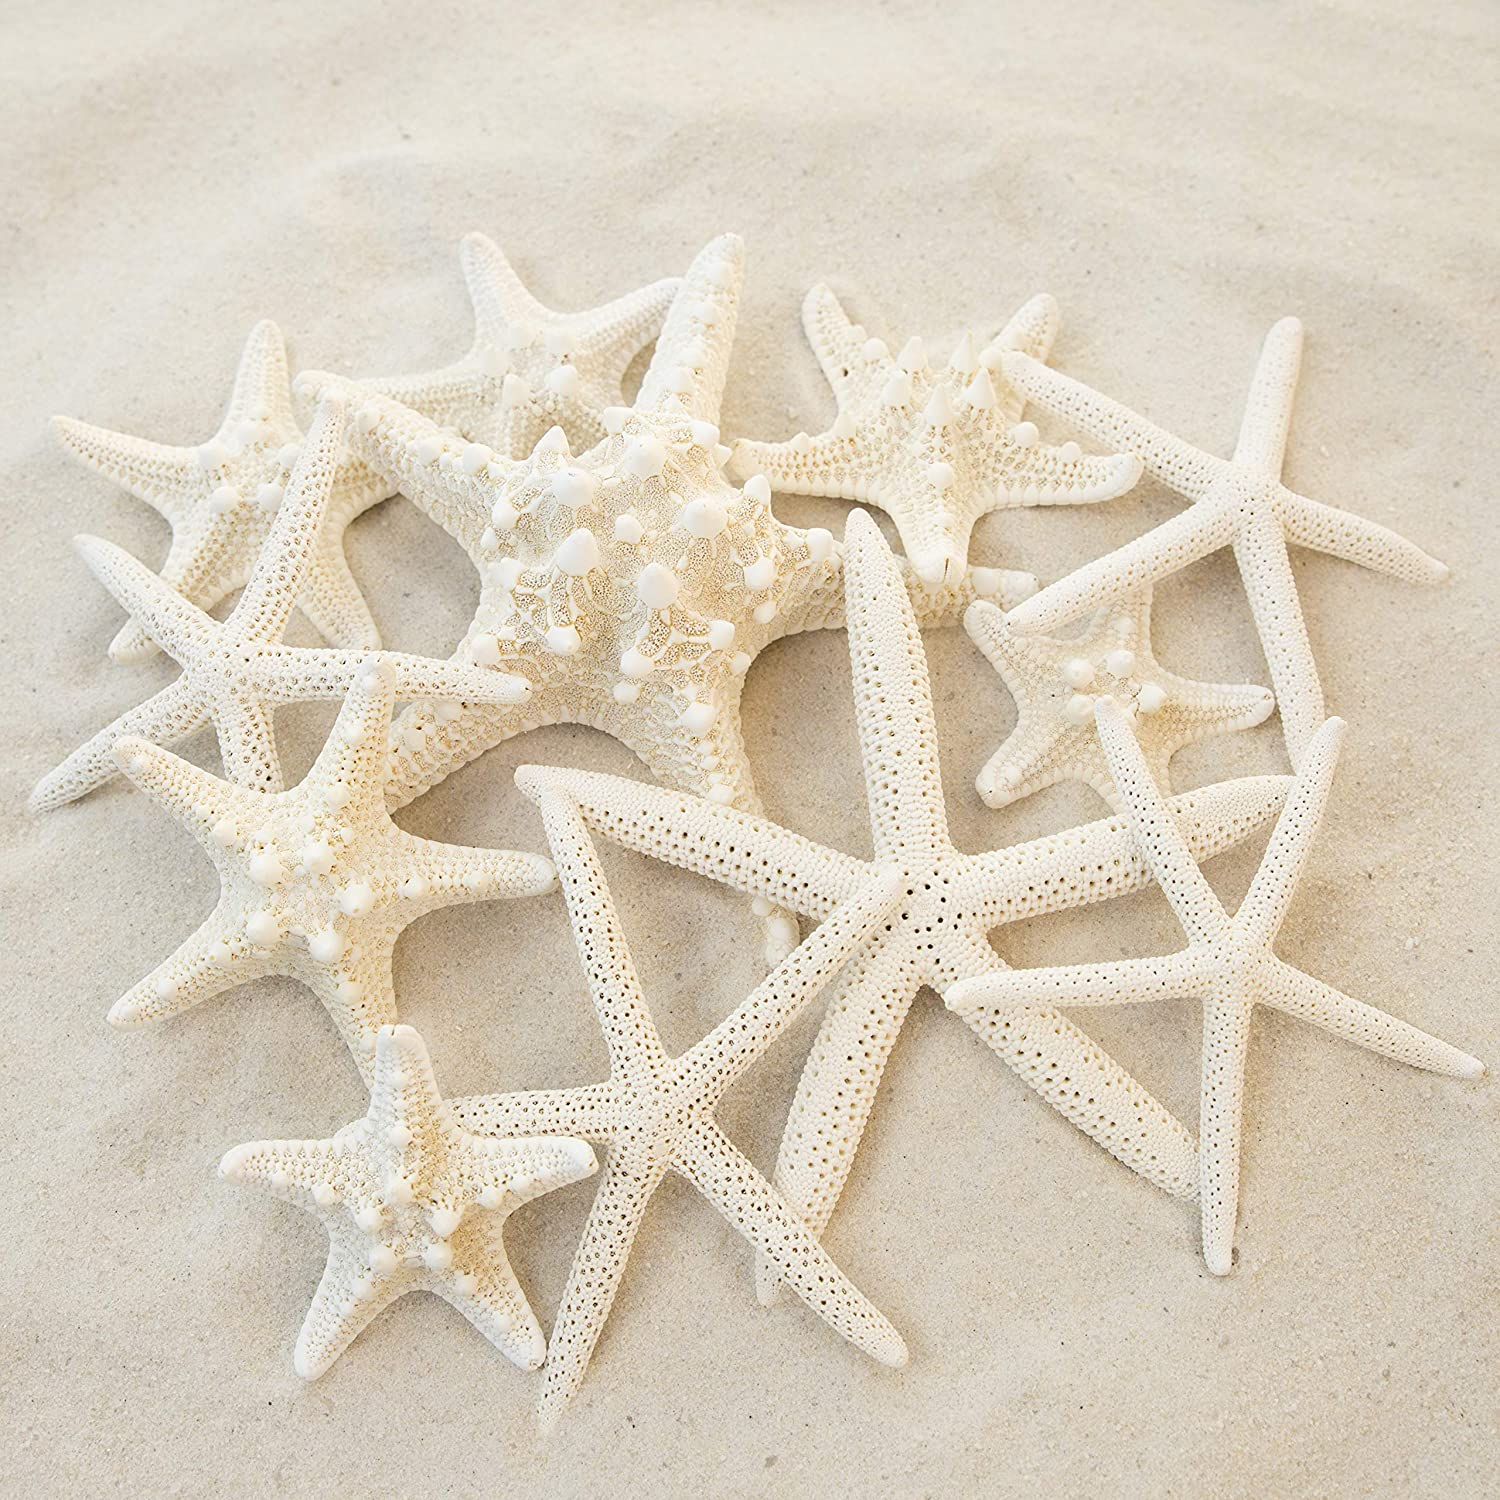 """Pencil and Knobby Starfish 1"""" to 6"""" Set of 12 - Wedding Centerpiece, Beach Home Decor, Crafts, Decorative Hanging Ornaments by Tumbler Home"""